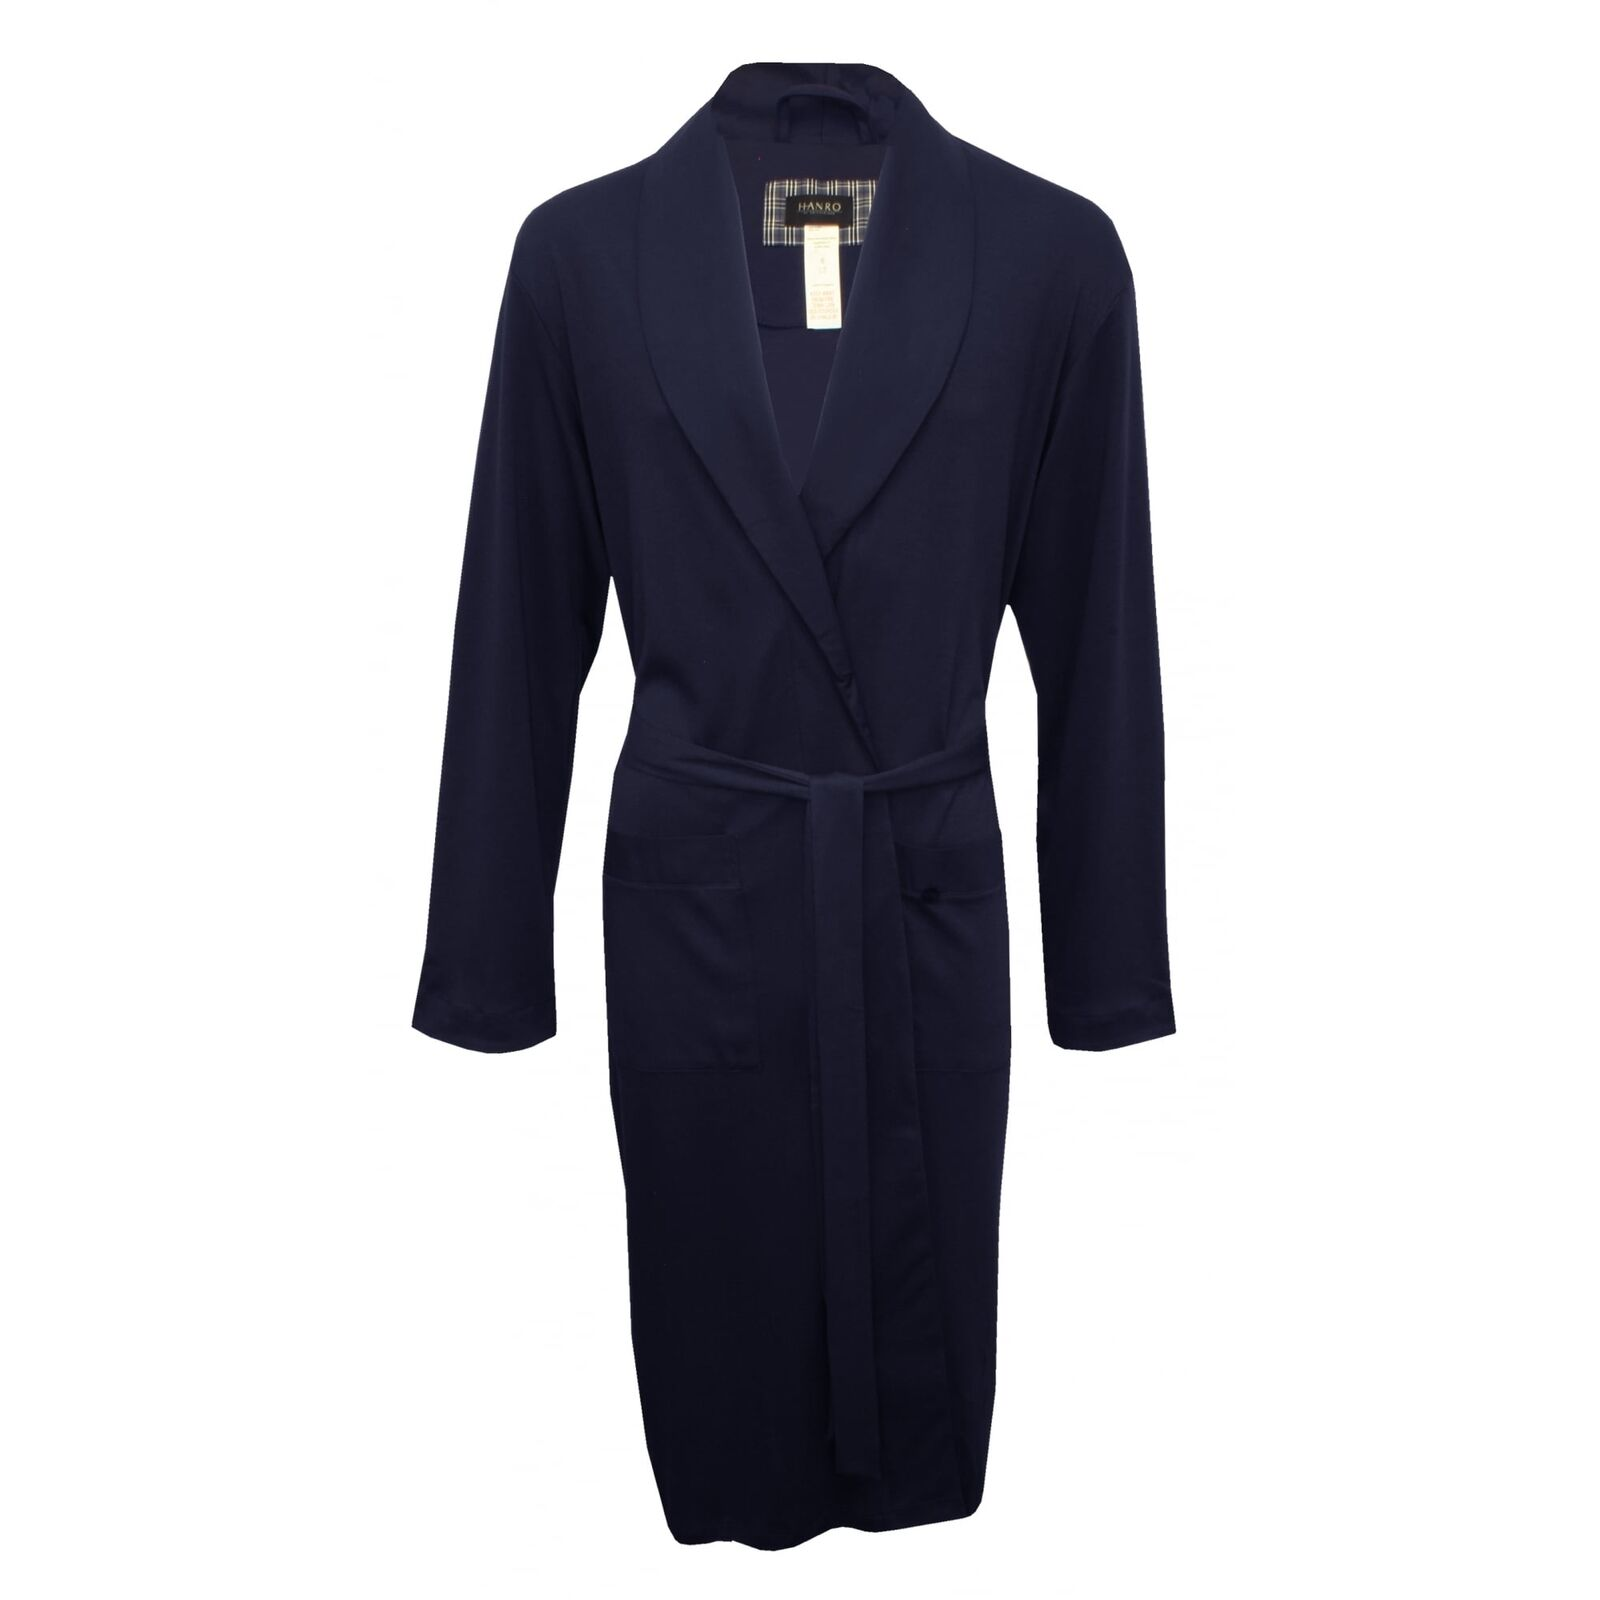 Hanro Night & Day Jersey Knit Men's Bathrobe, Navy